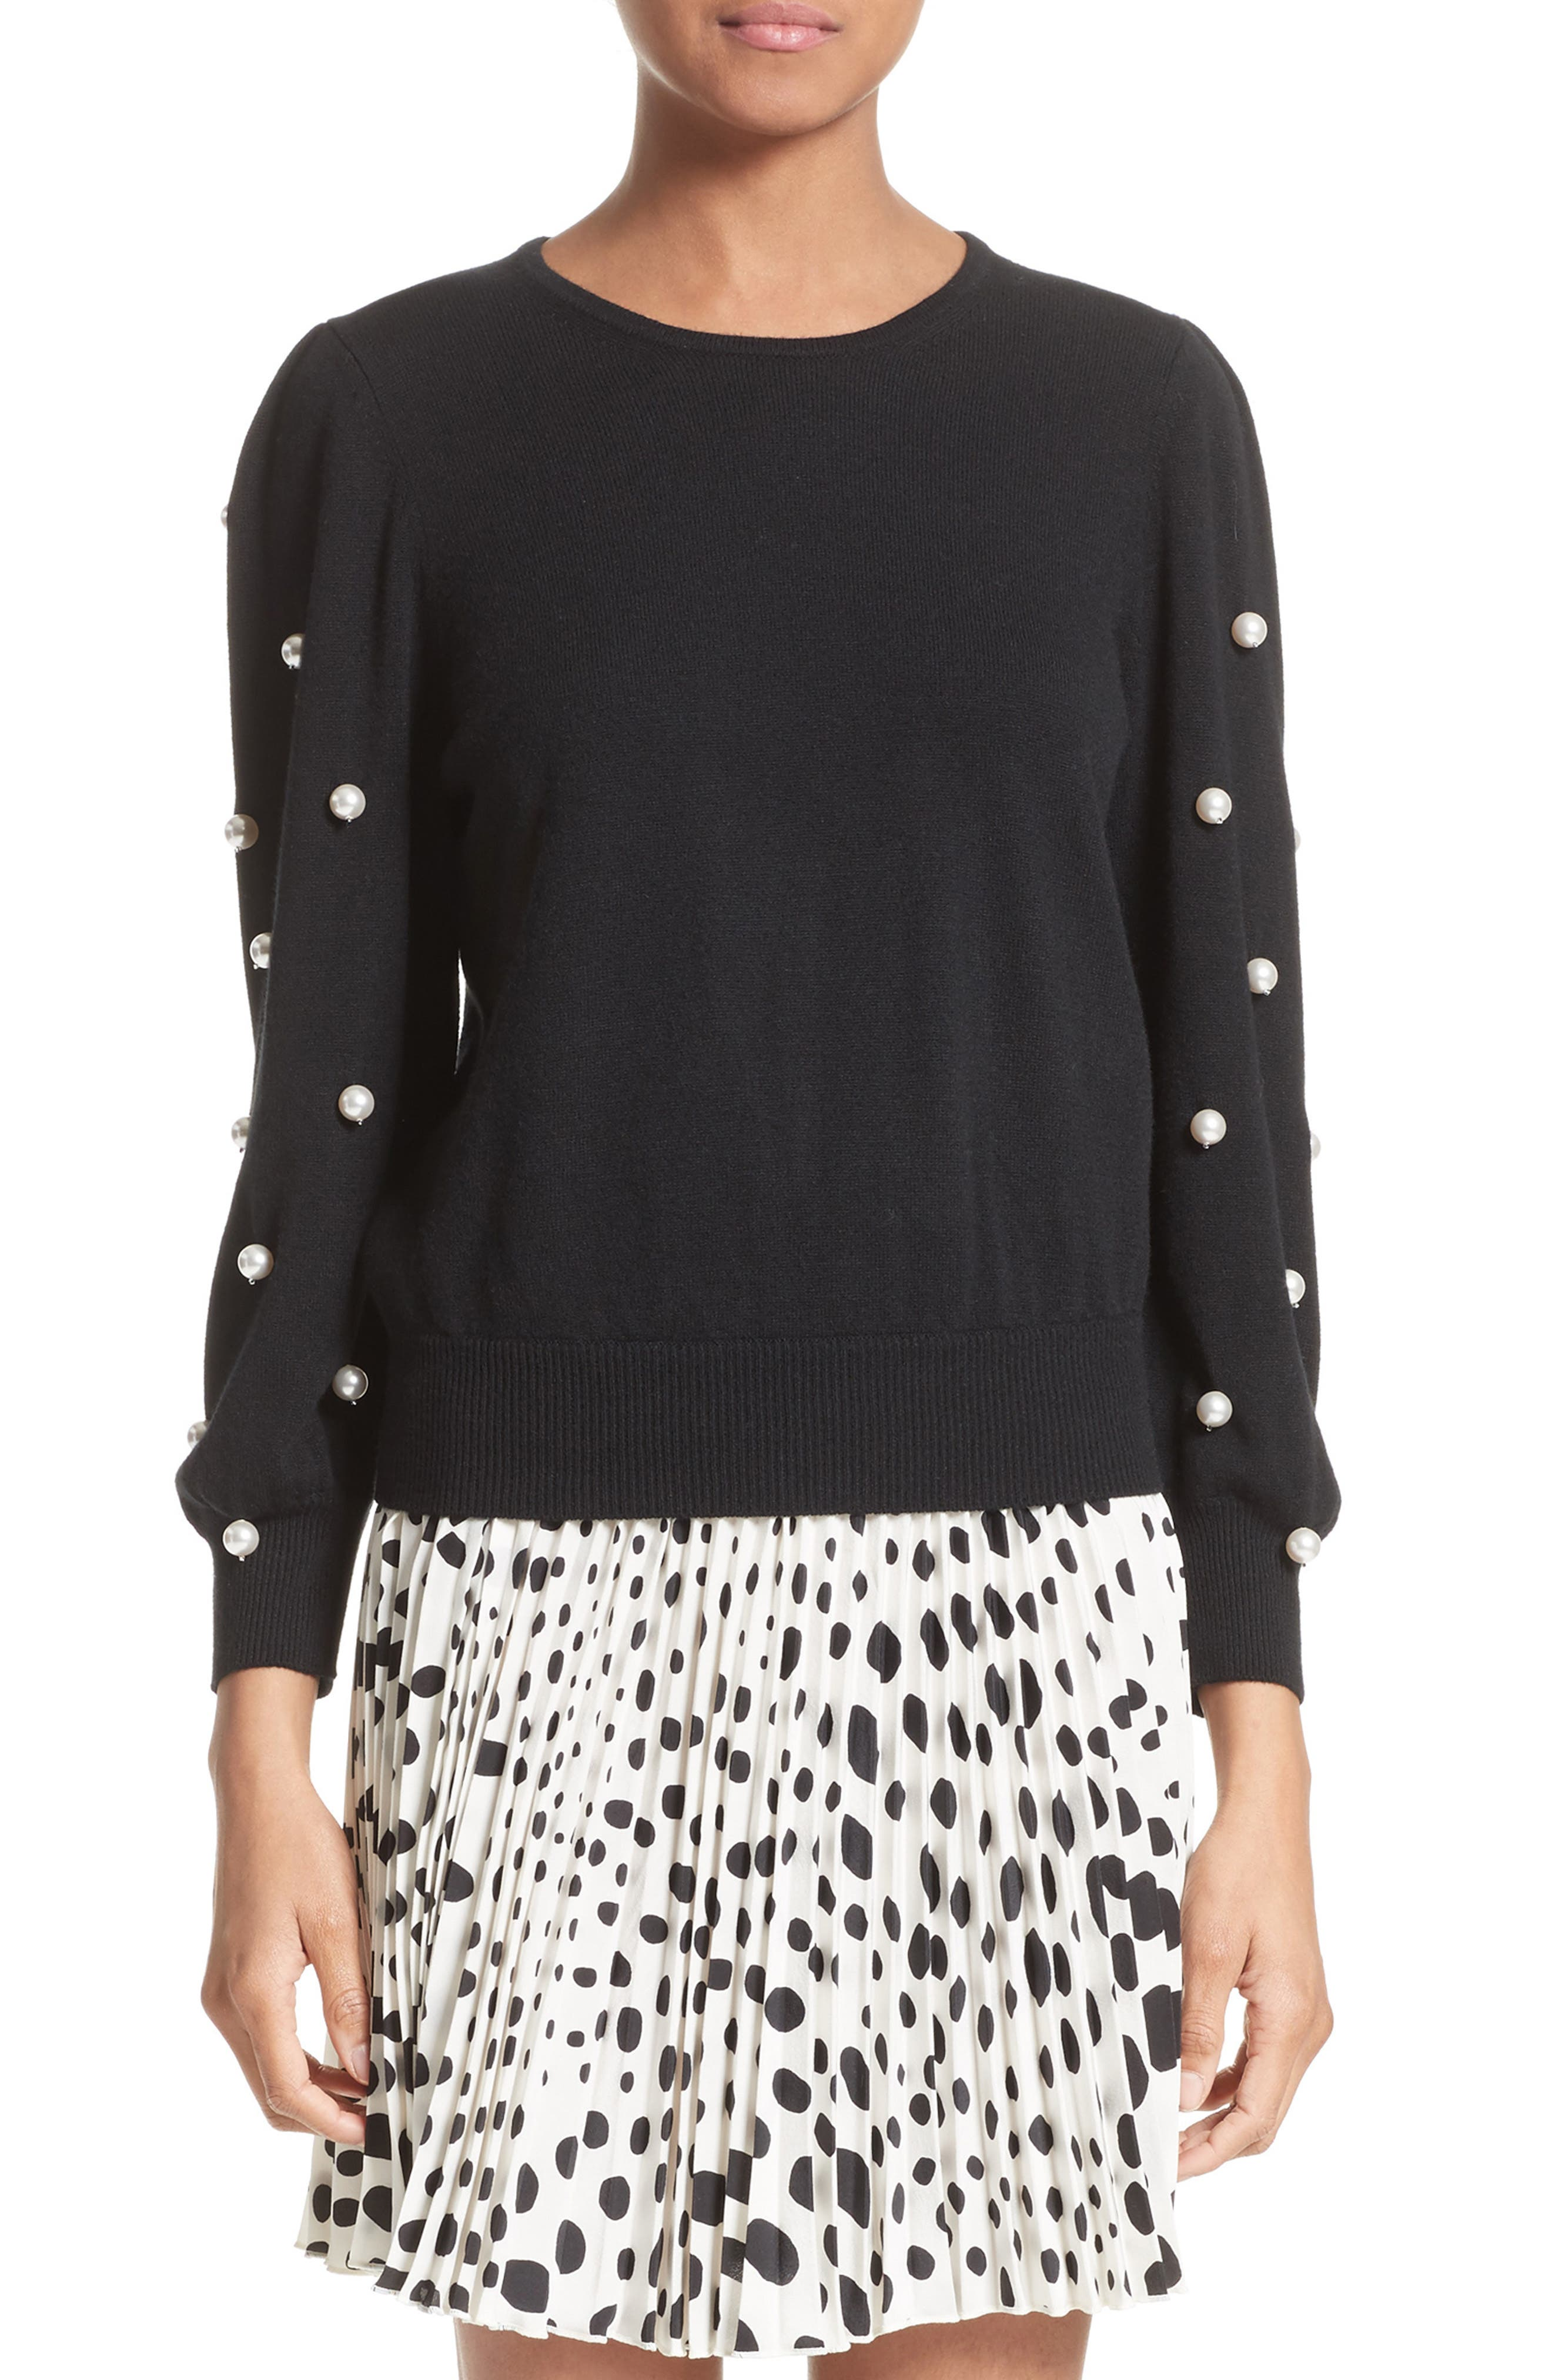 Imitation Pearl Embellished Wool & Cashmere Sweater,                             Main thumbnail 1, color,                             001